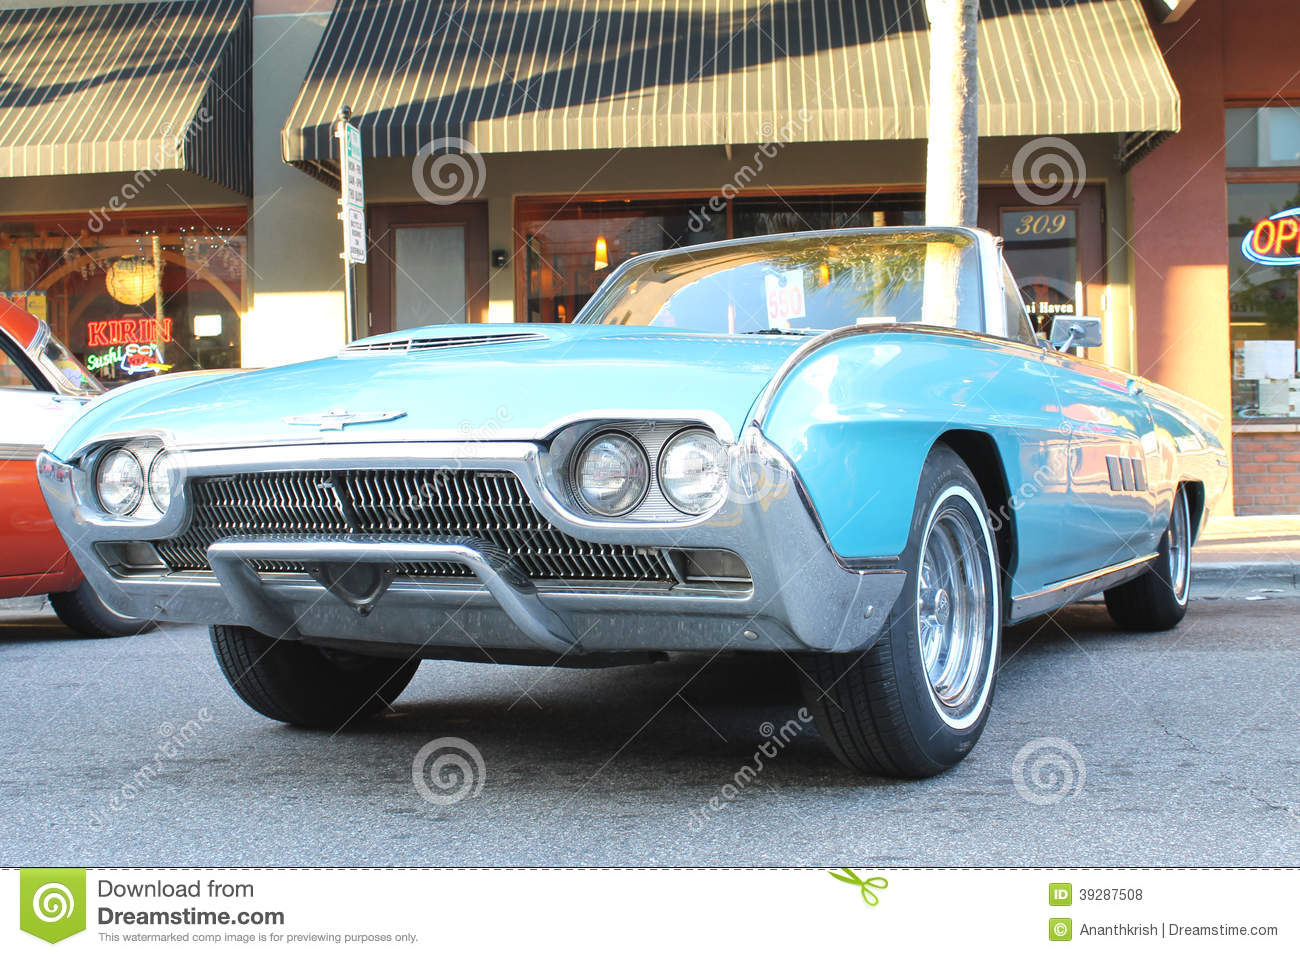 the old ford thunderbird car at the car show editorial stock photo image 39287508. Black Bedroom Furniture Sets. Home Design Ideas